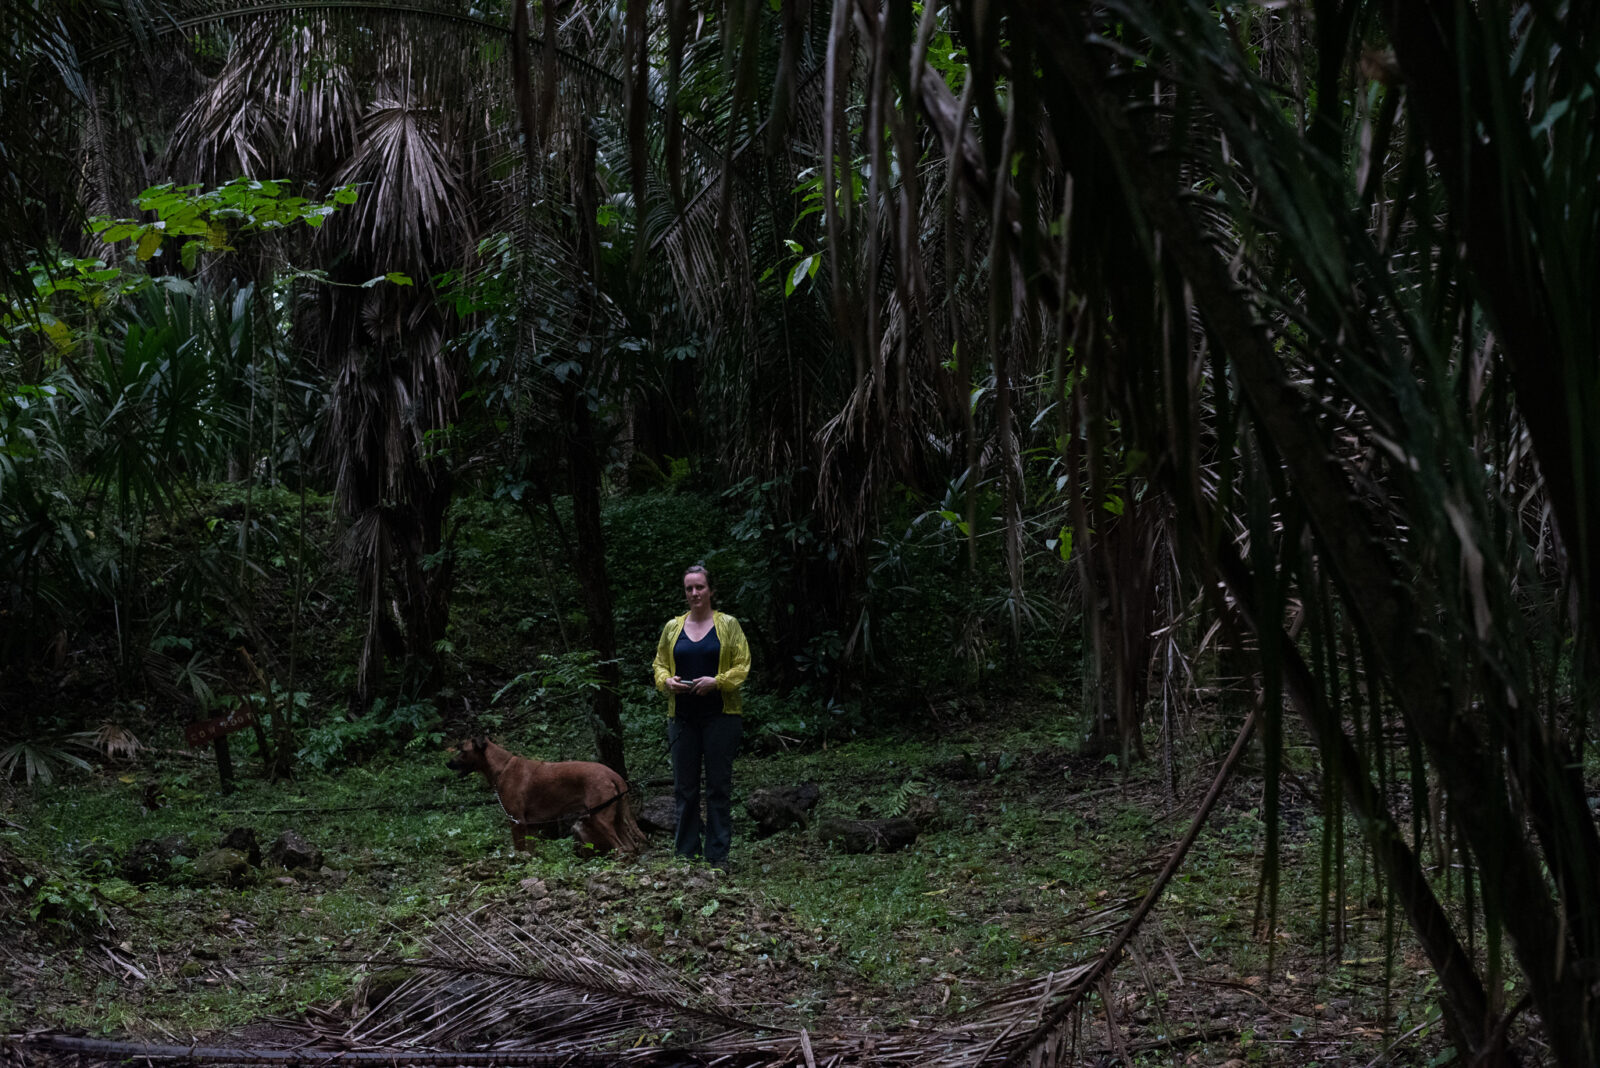 lush green forest with a woman wearing a bright yellow rain jacket with a dog on a leash